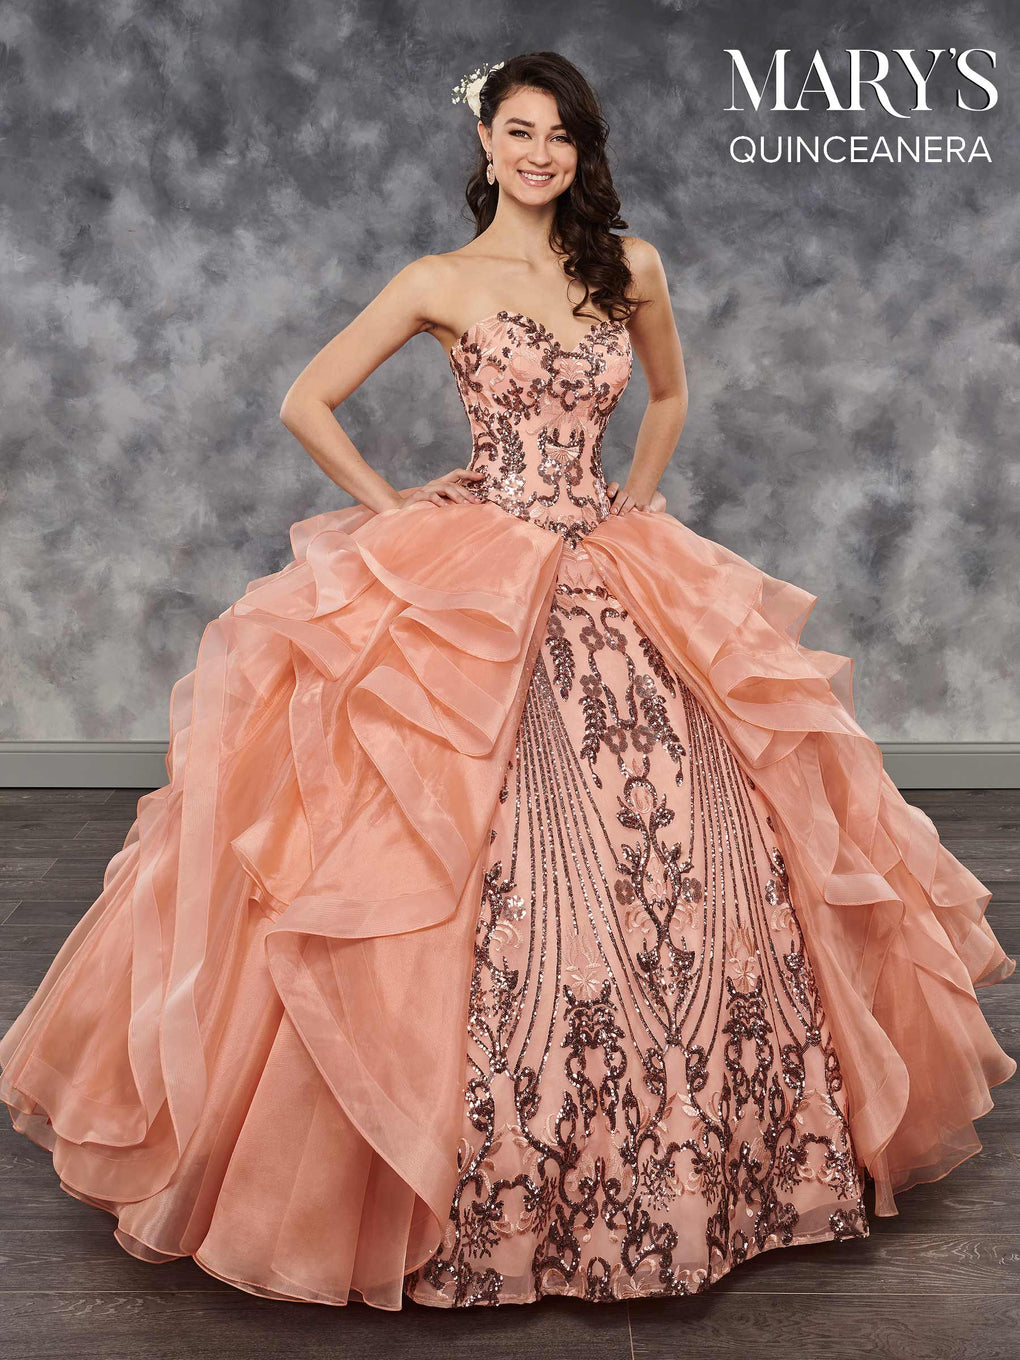 Marys Quinceanera Dresses in Marsala, Peach, or White Color